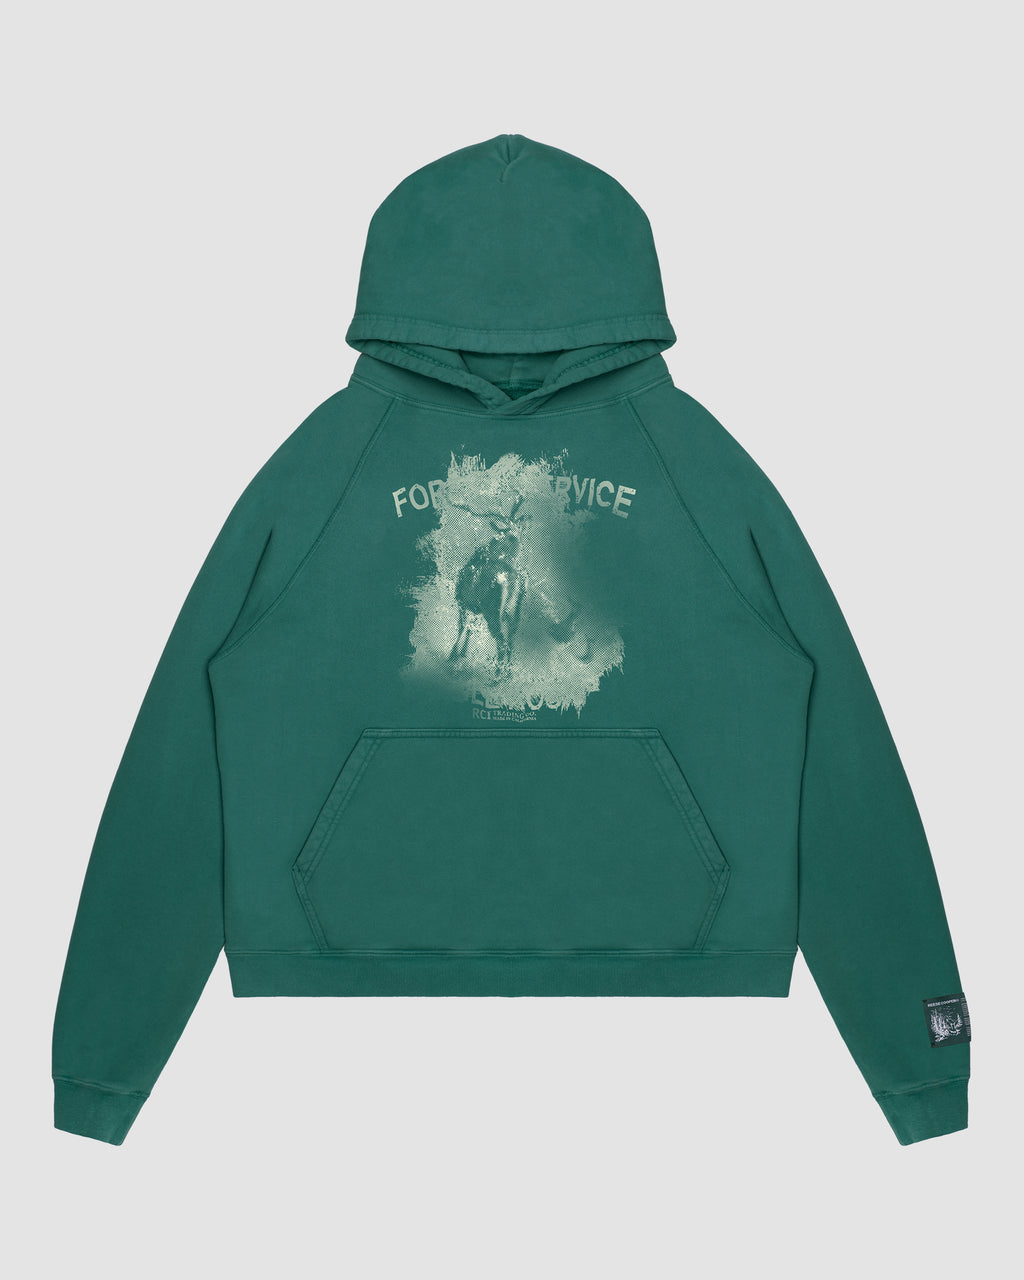 Forest Service Hooded Sweatshirt in Green